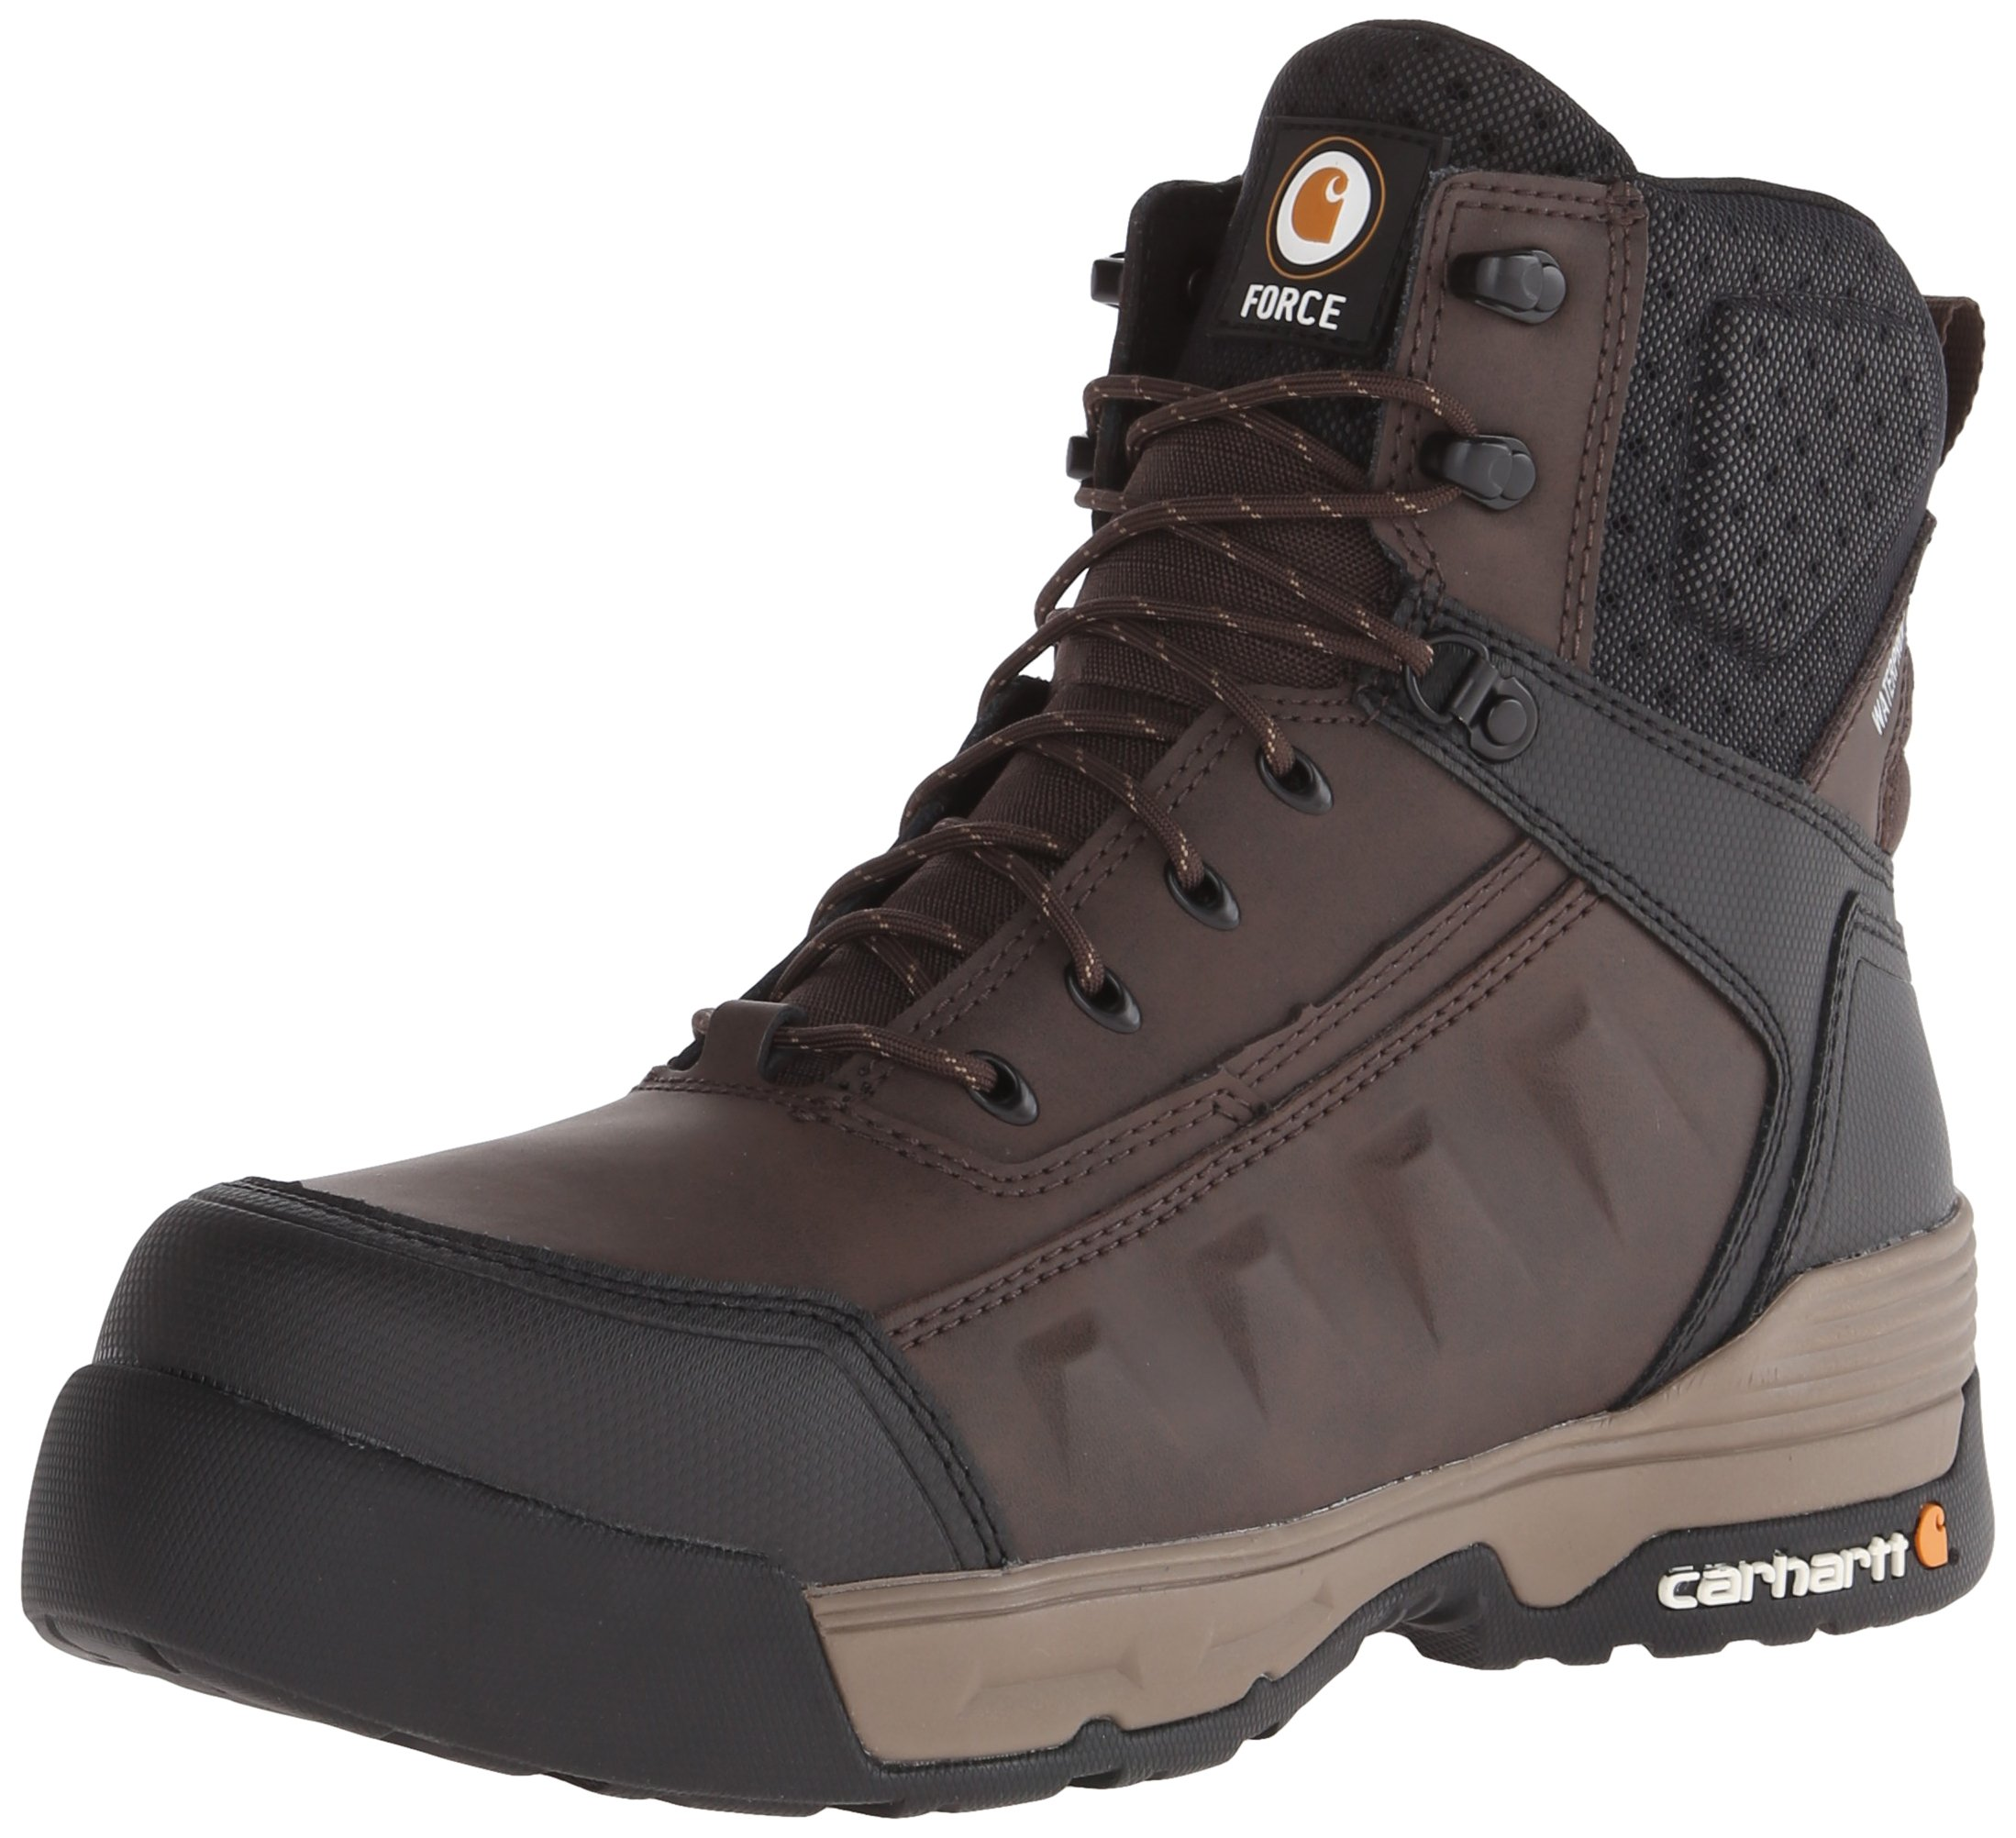 Carhartt Men's 6'' Force Lightweight Waterproof Composite Toe Work Boot CMA6346, Brown Coated Leather, 10 W US